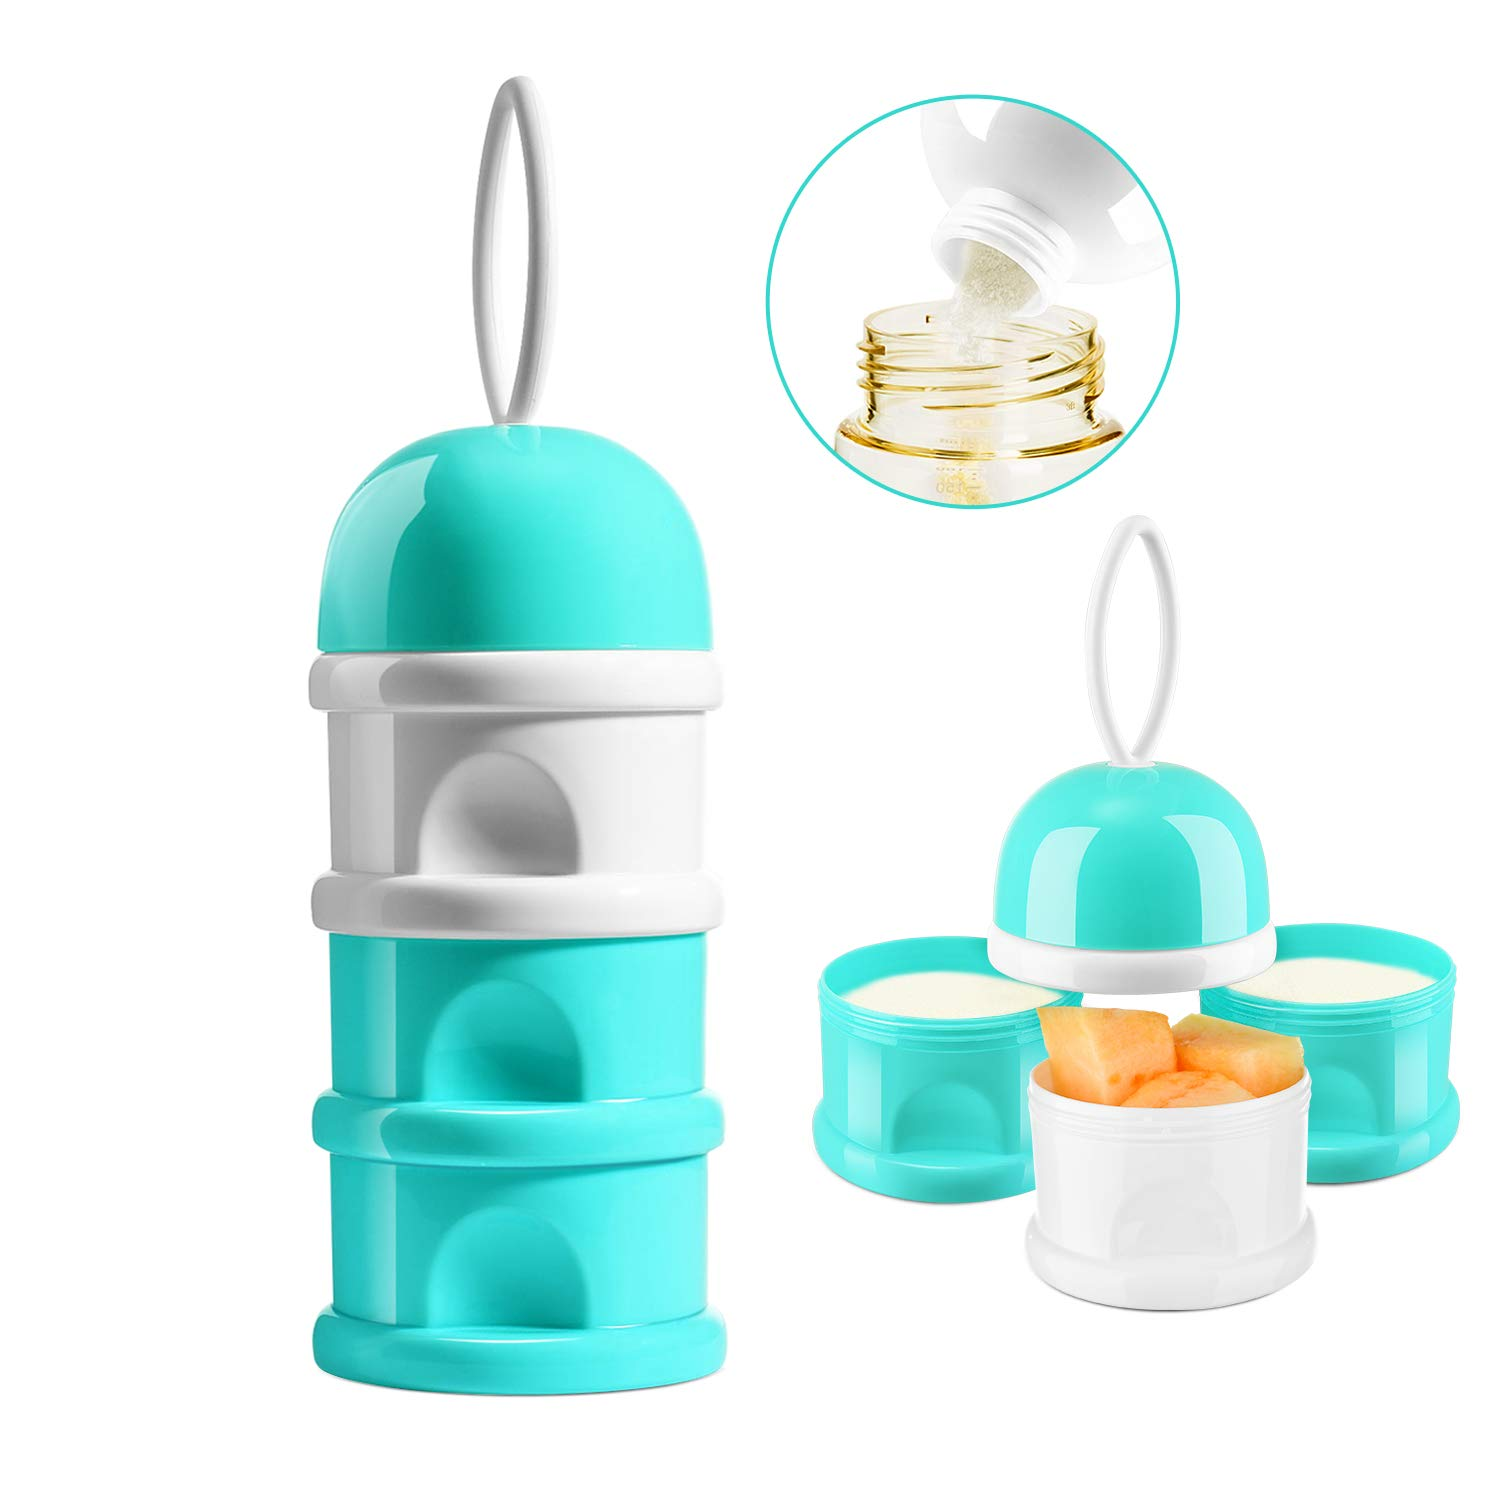 NCVI Baby Milk Powder Formula Dispenser 3 Layers Portable Multifunctional Spill-Proof Baby Feedingravel Storage Container with Handle BPA Free (8367)